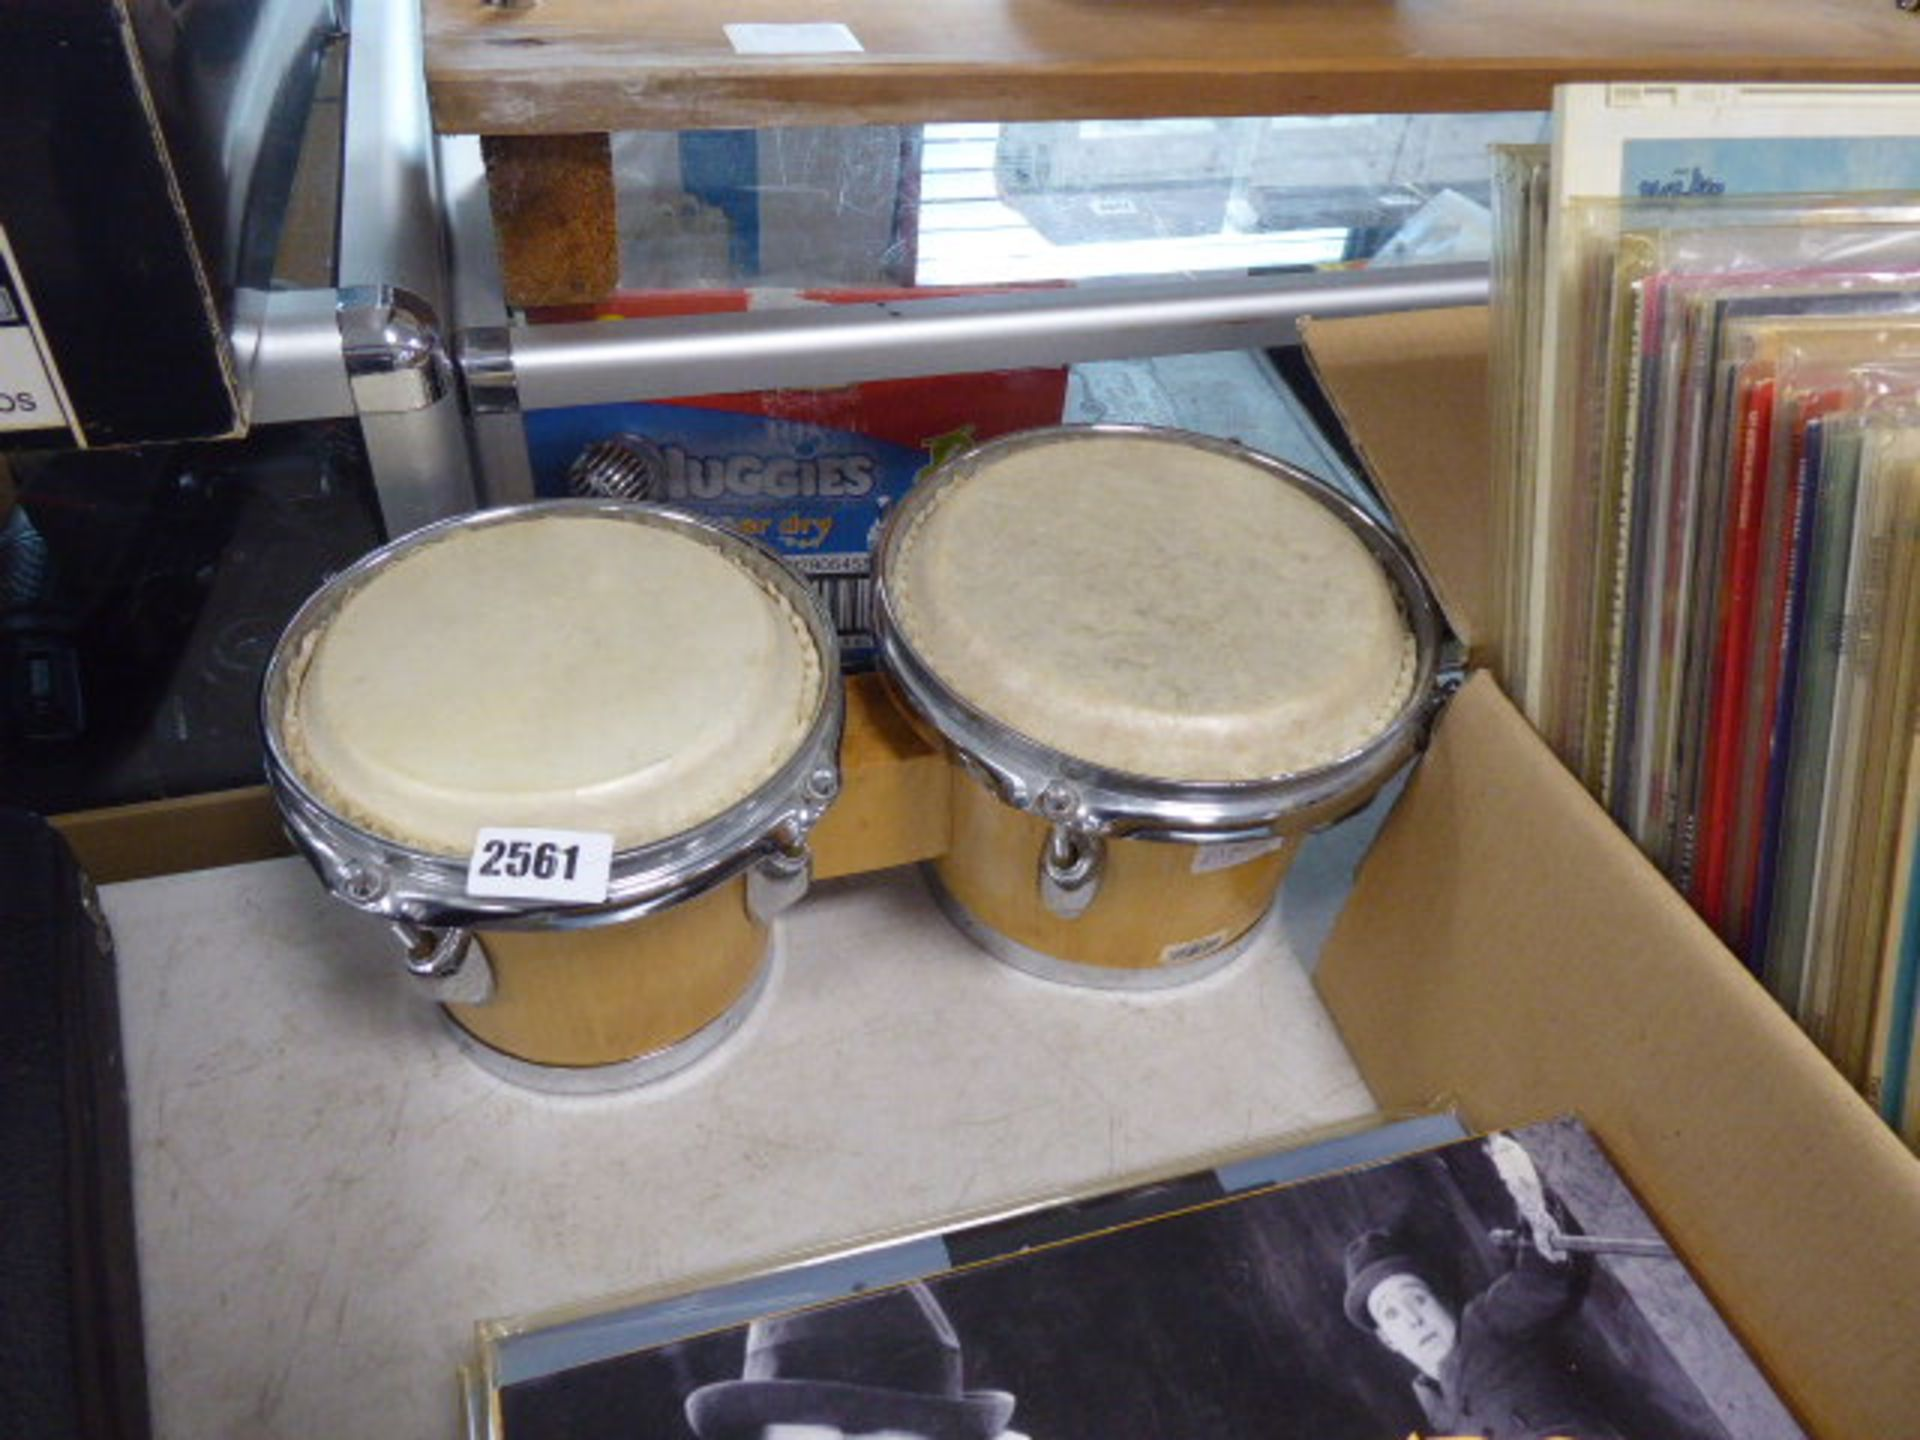 Lot 2561 - Pair of hand drums